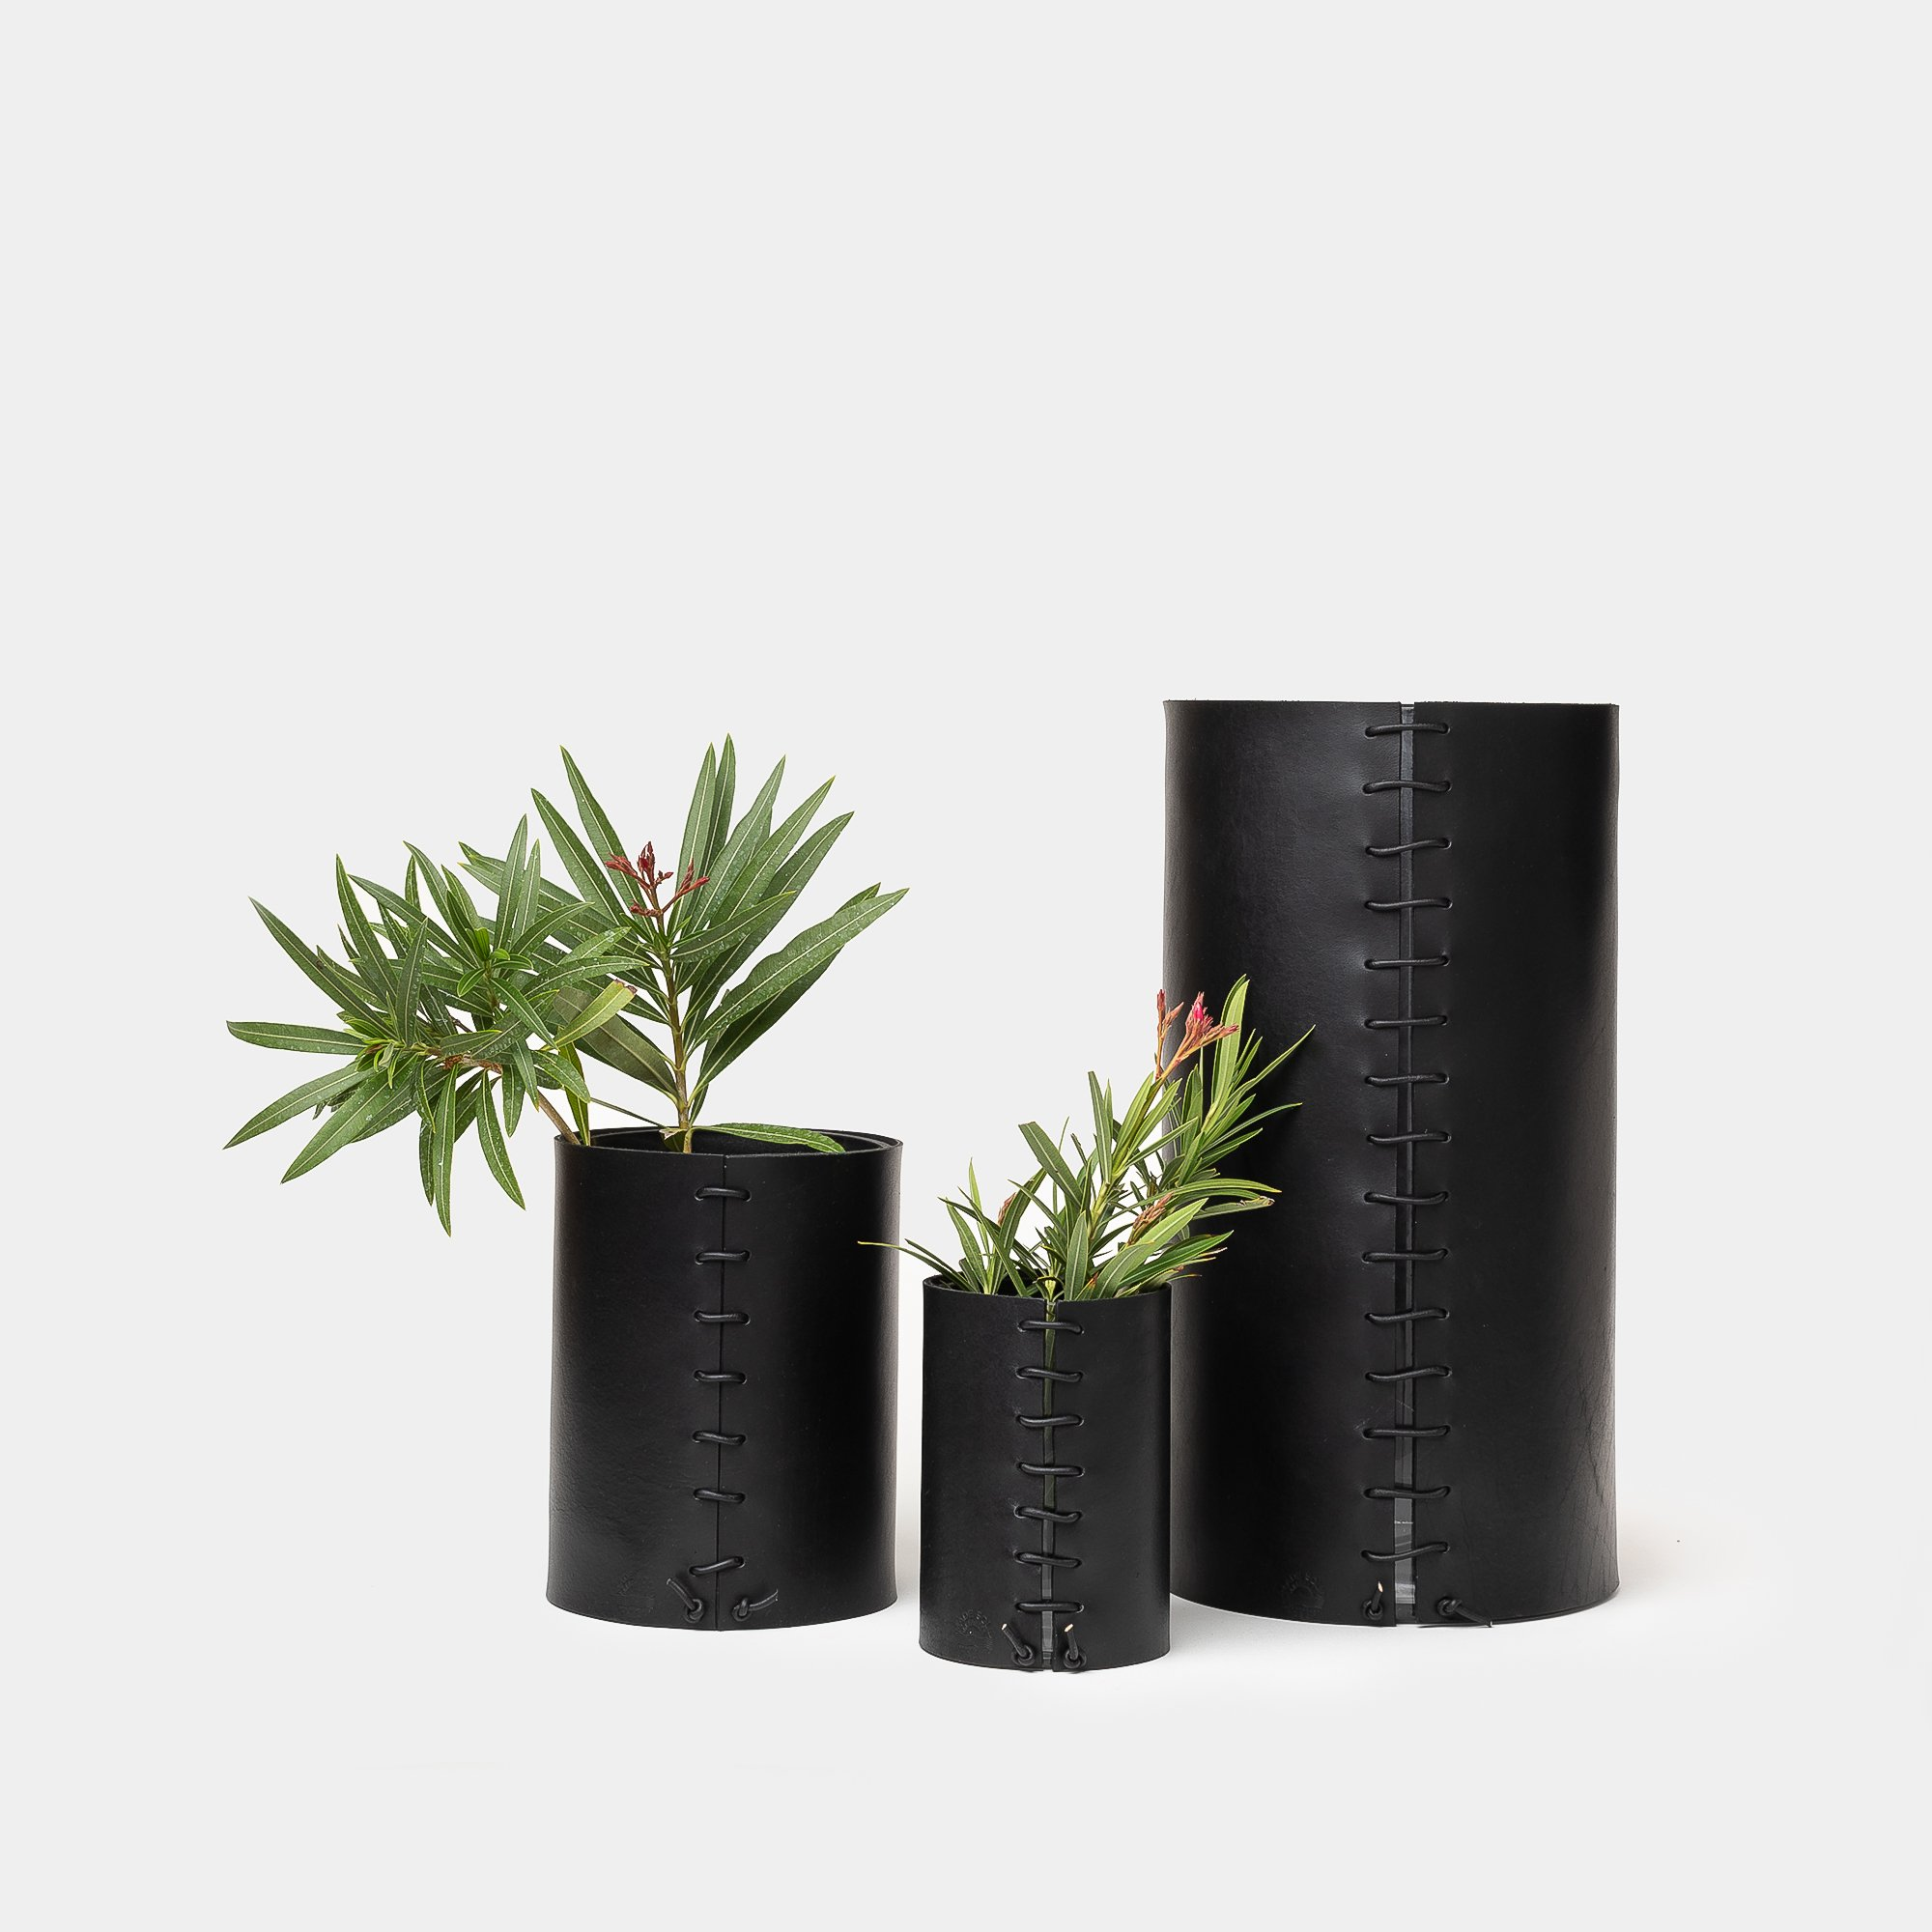 ALL-SORTS-OF-SHOPPE-MADE-SOLID-LEATHER-WRAPPED-VASES-BLACK